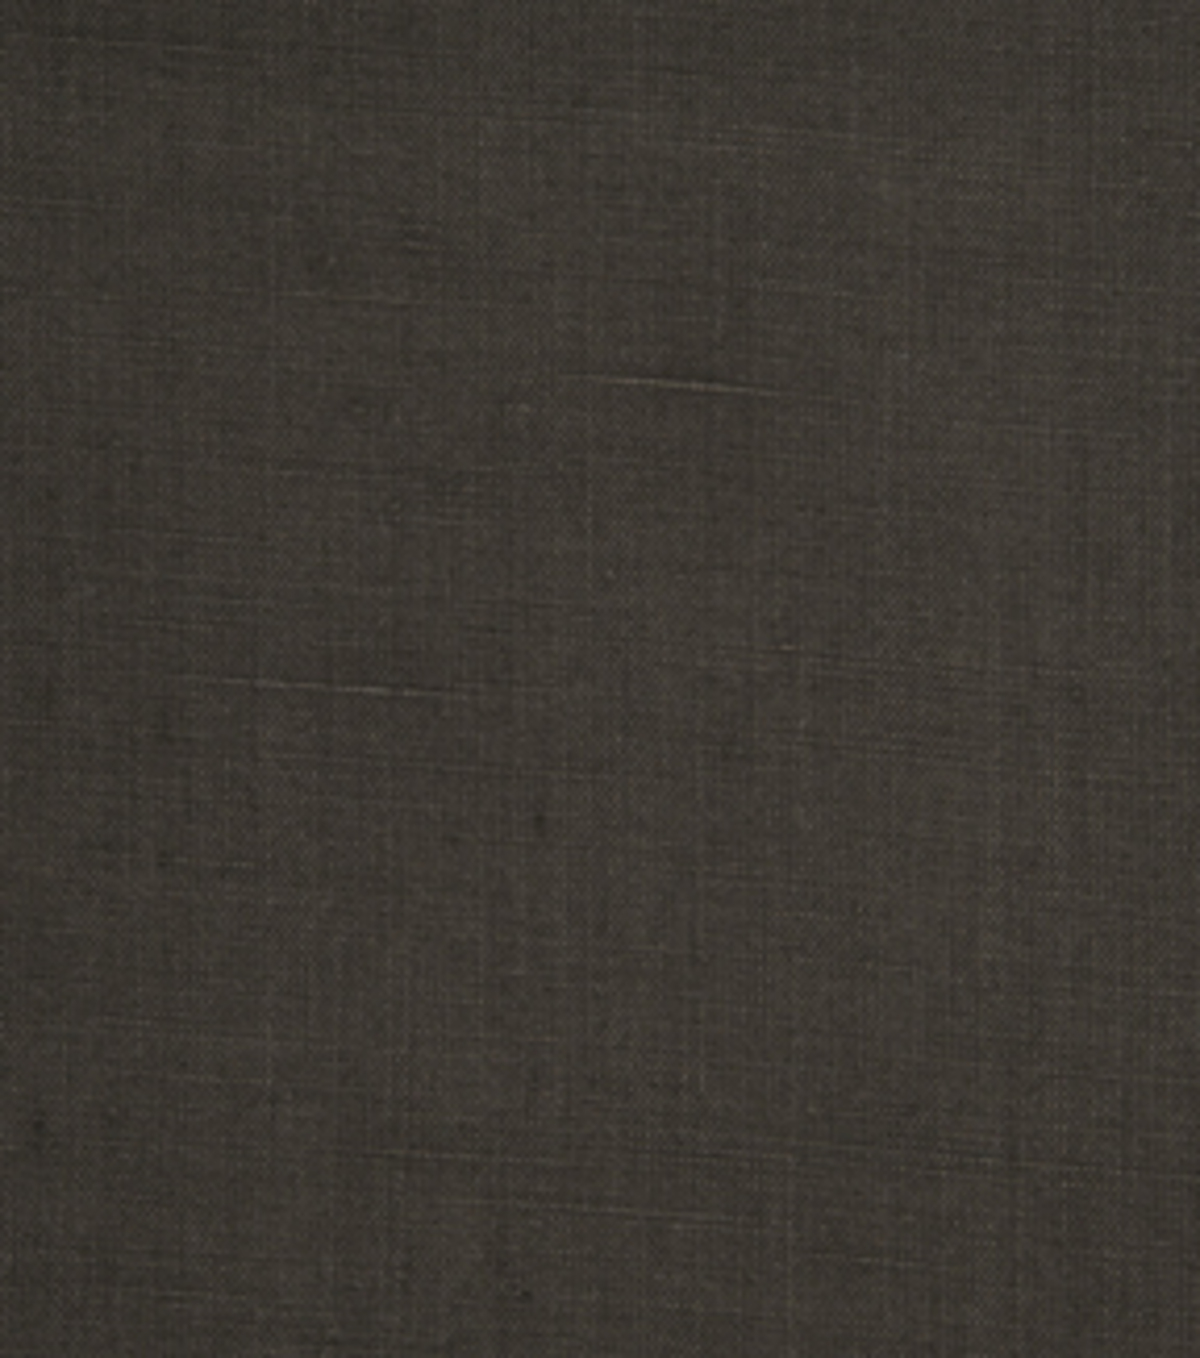 Home Decor 8\u0022x8\u0022 Fabric Swatch-Signature Series Sigourney Steel